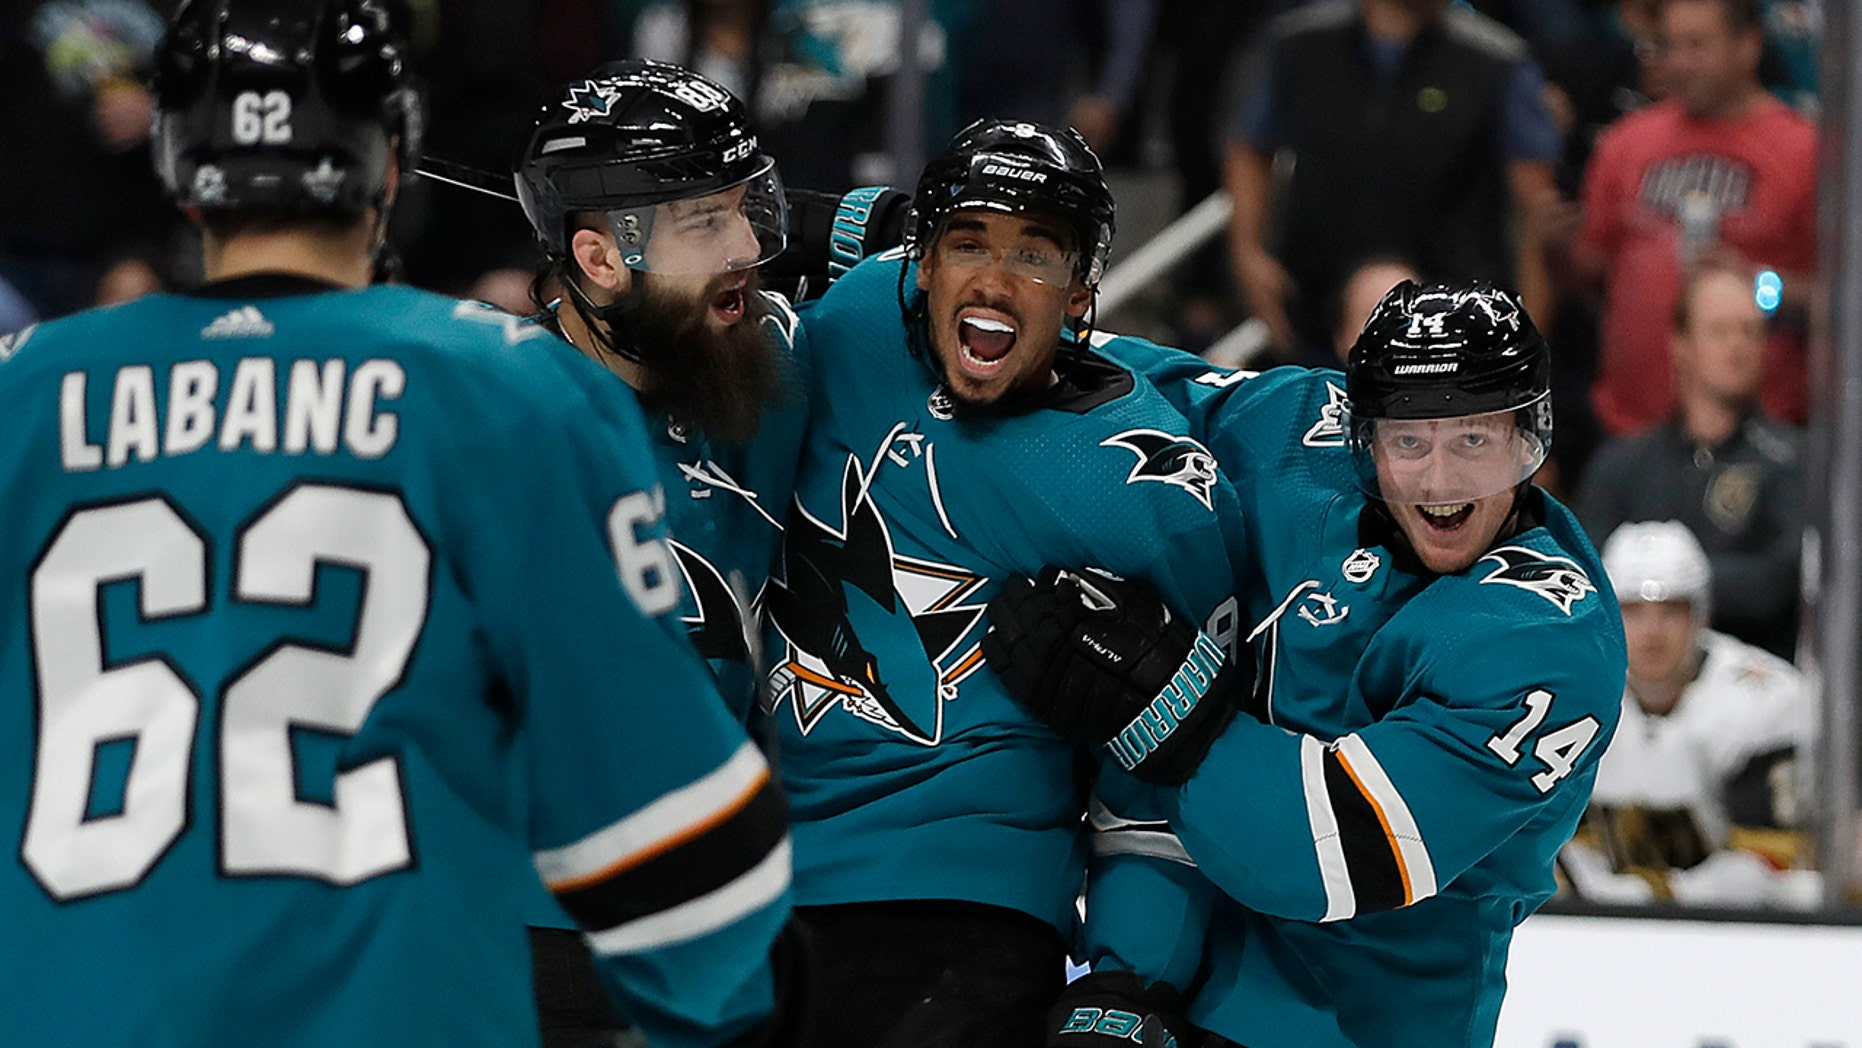 From left, San Jose Sharks' Kevin Labanc (62), Brent Burns, Evander Kane, and Gustav Nyquist (14) celebrate a goal by Joe Pavelski, not seen, against the Vegas Golden Knights during the first period of Game 1 of an NHL hockey first-round playoff series Wednesday, April 10, 2019, in San Jose, Calif. (AP Photo/Ben Margot)